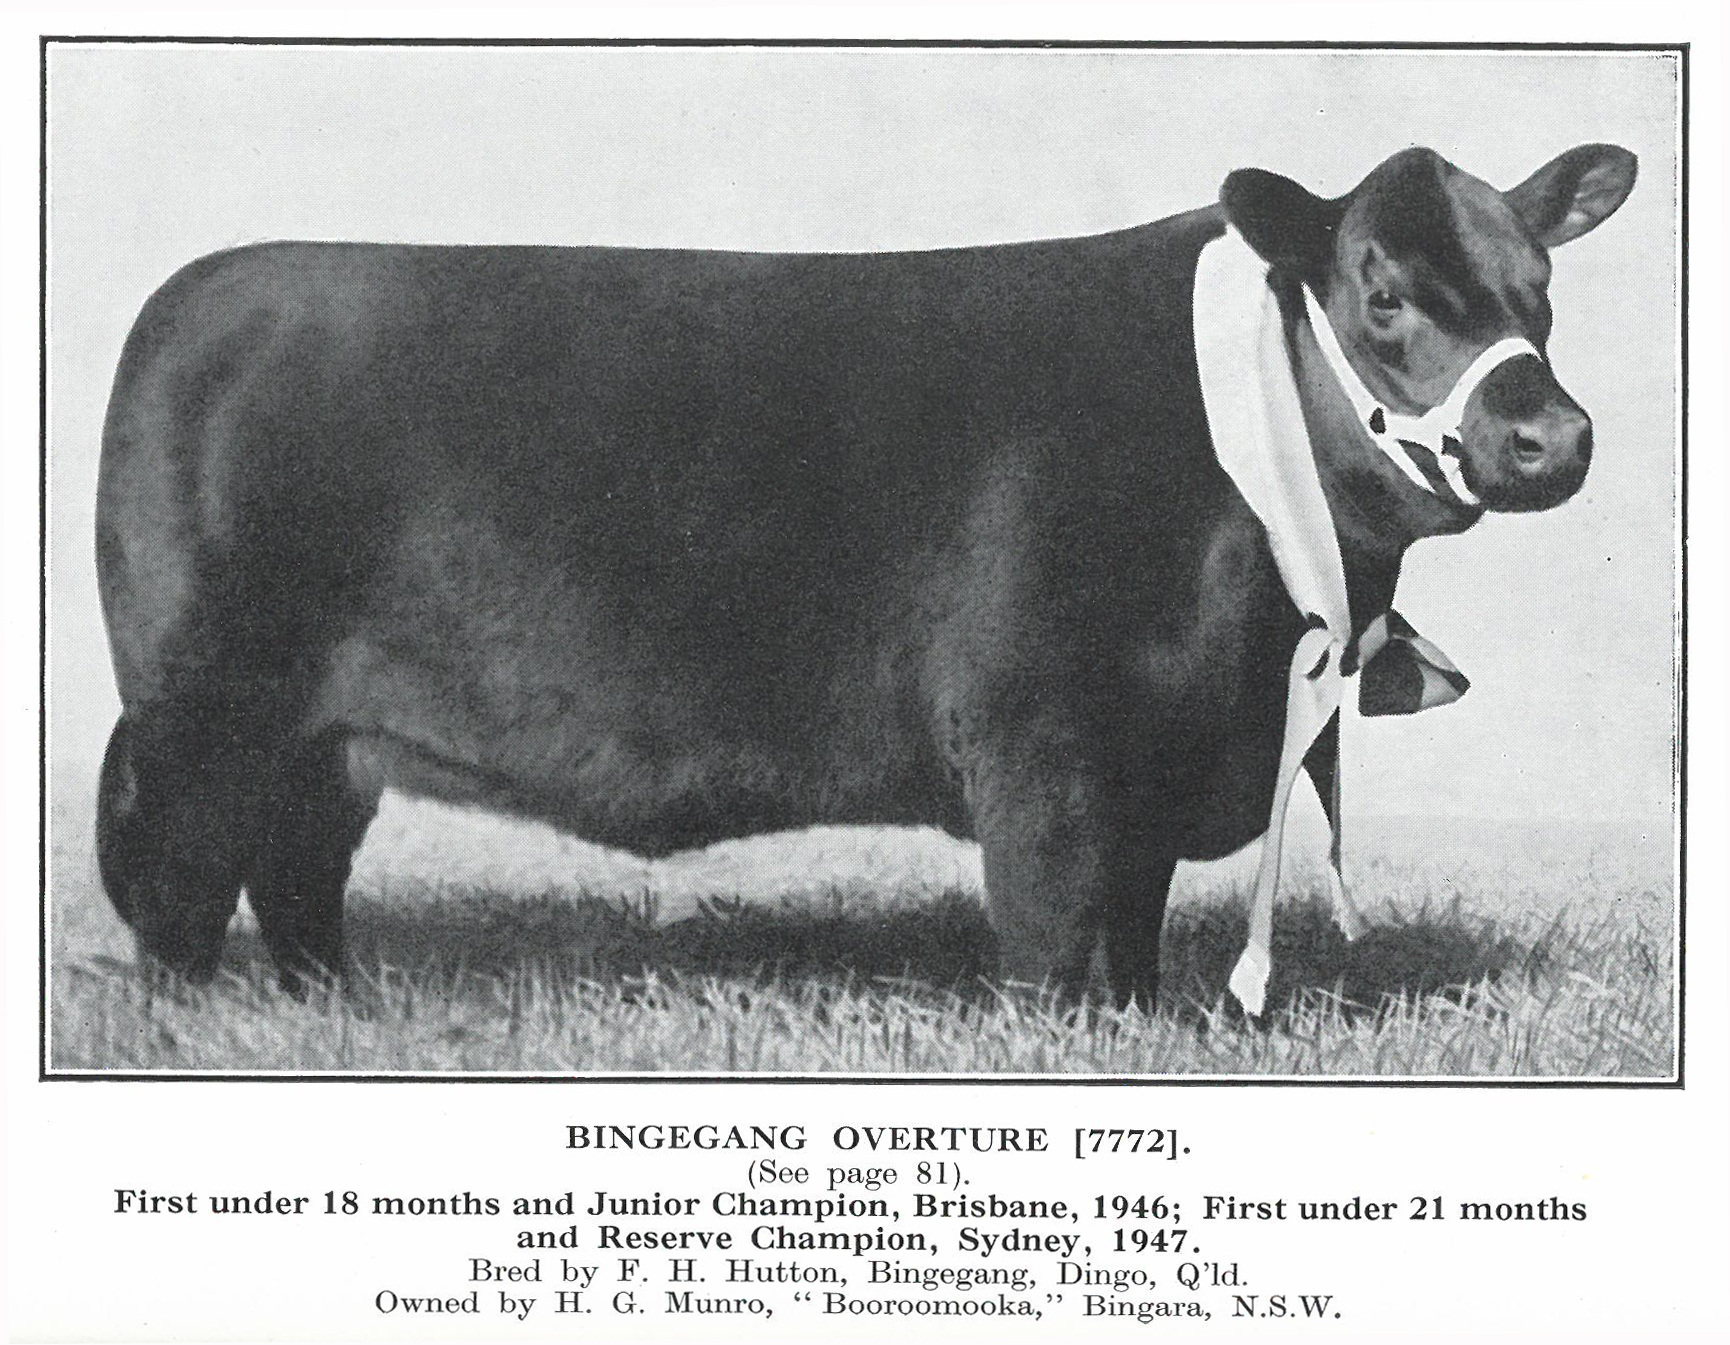 Bingegang Overture